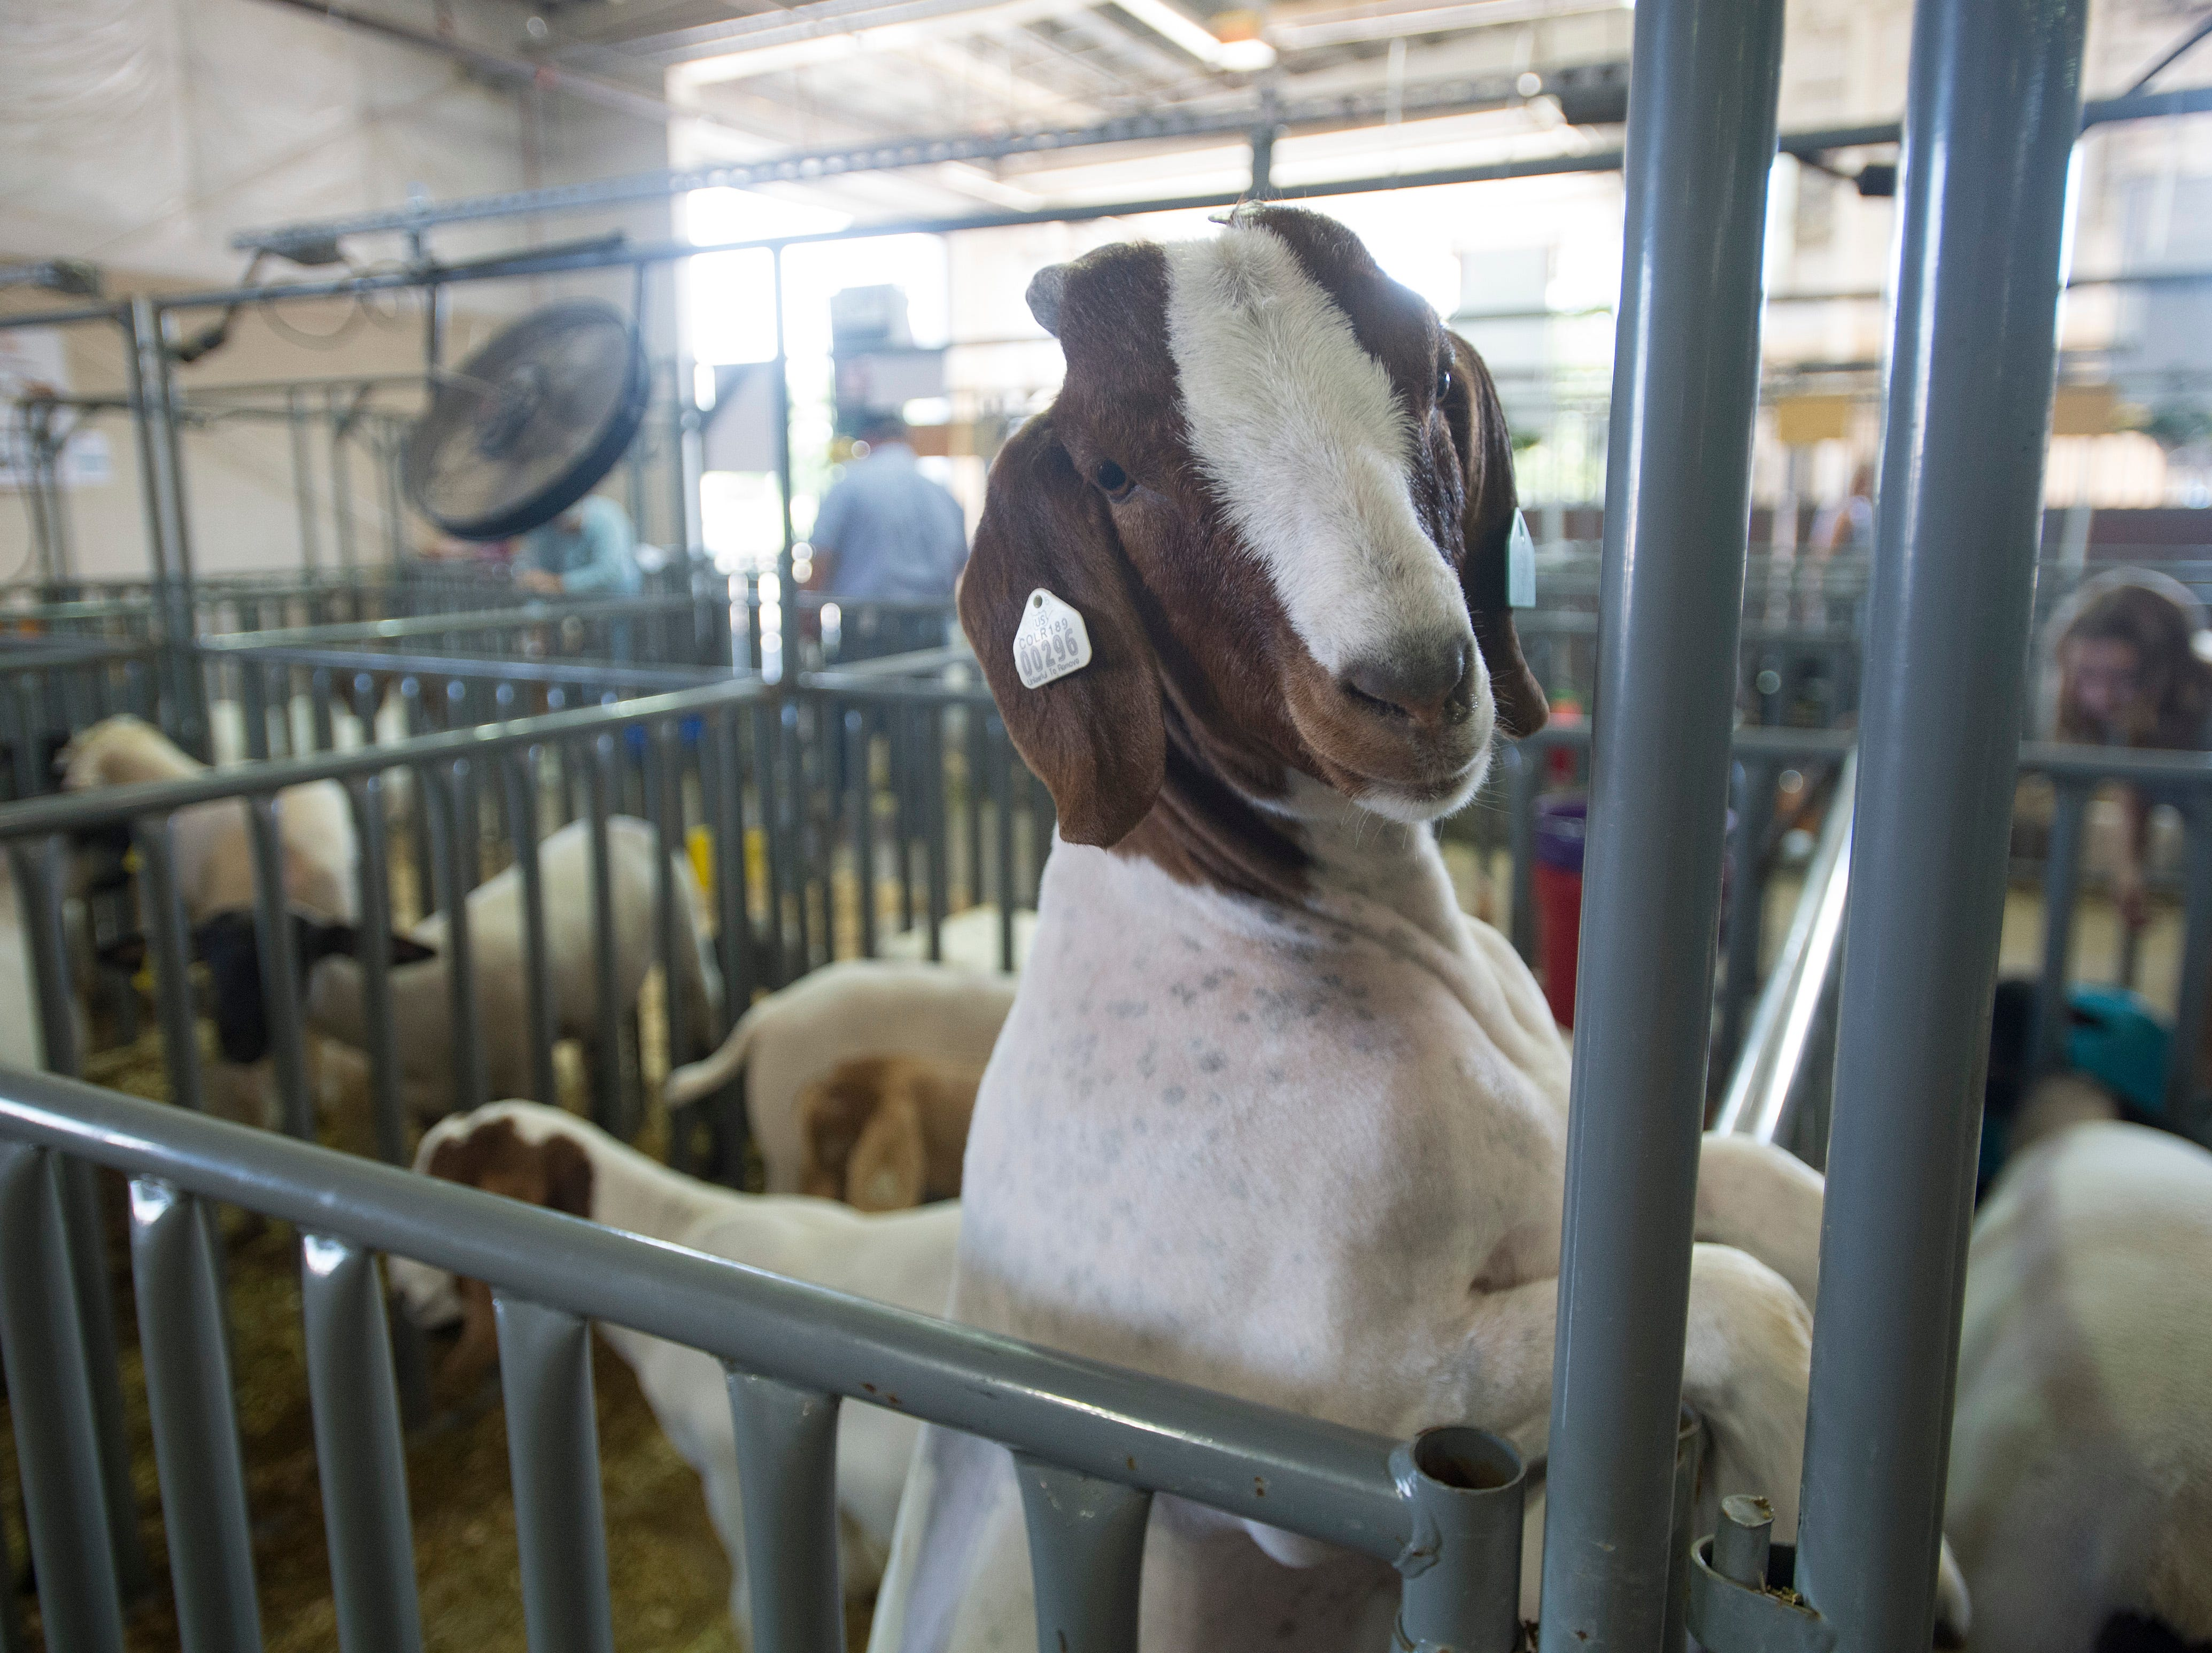 A goat climbs up for a view outside its pen at the Larimer County Fair Youth Livestock Sale at The Ranch in Loveland on Wednesday, August 8, 2018.